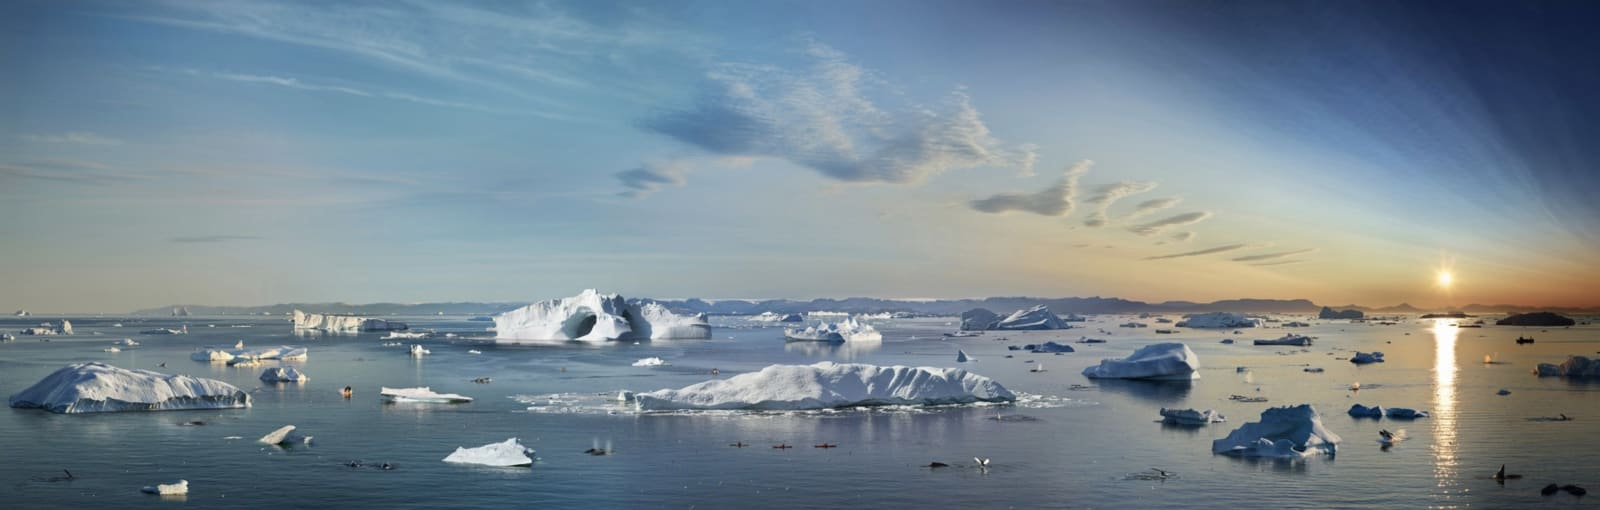 Stephen Wilkes The Great July Melt, Ilulissat, Greenland, Day to Night, 2019 Signed on label verso 19 x 60 inch archival pigment print Edition of 20 26 x 81 3/4 inch archival pigment print Edition of 15 38 x 119 inch archival pigment print Edition of 12